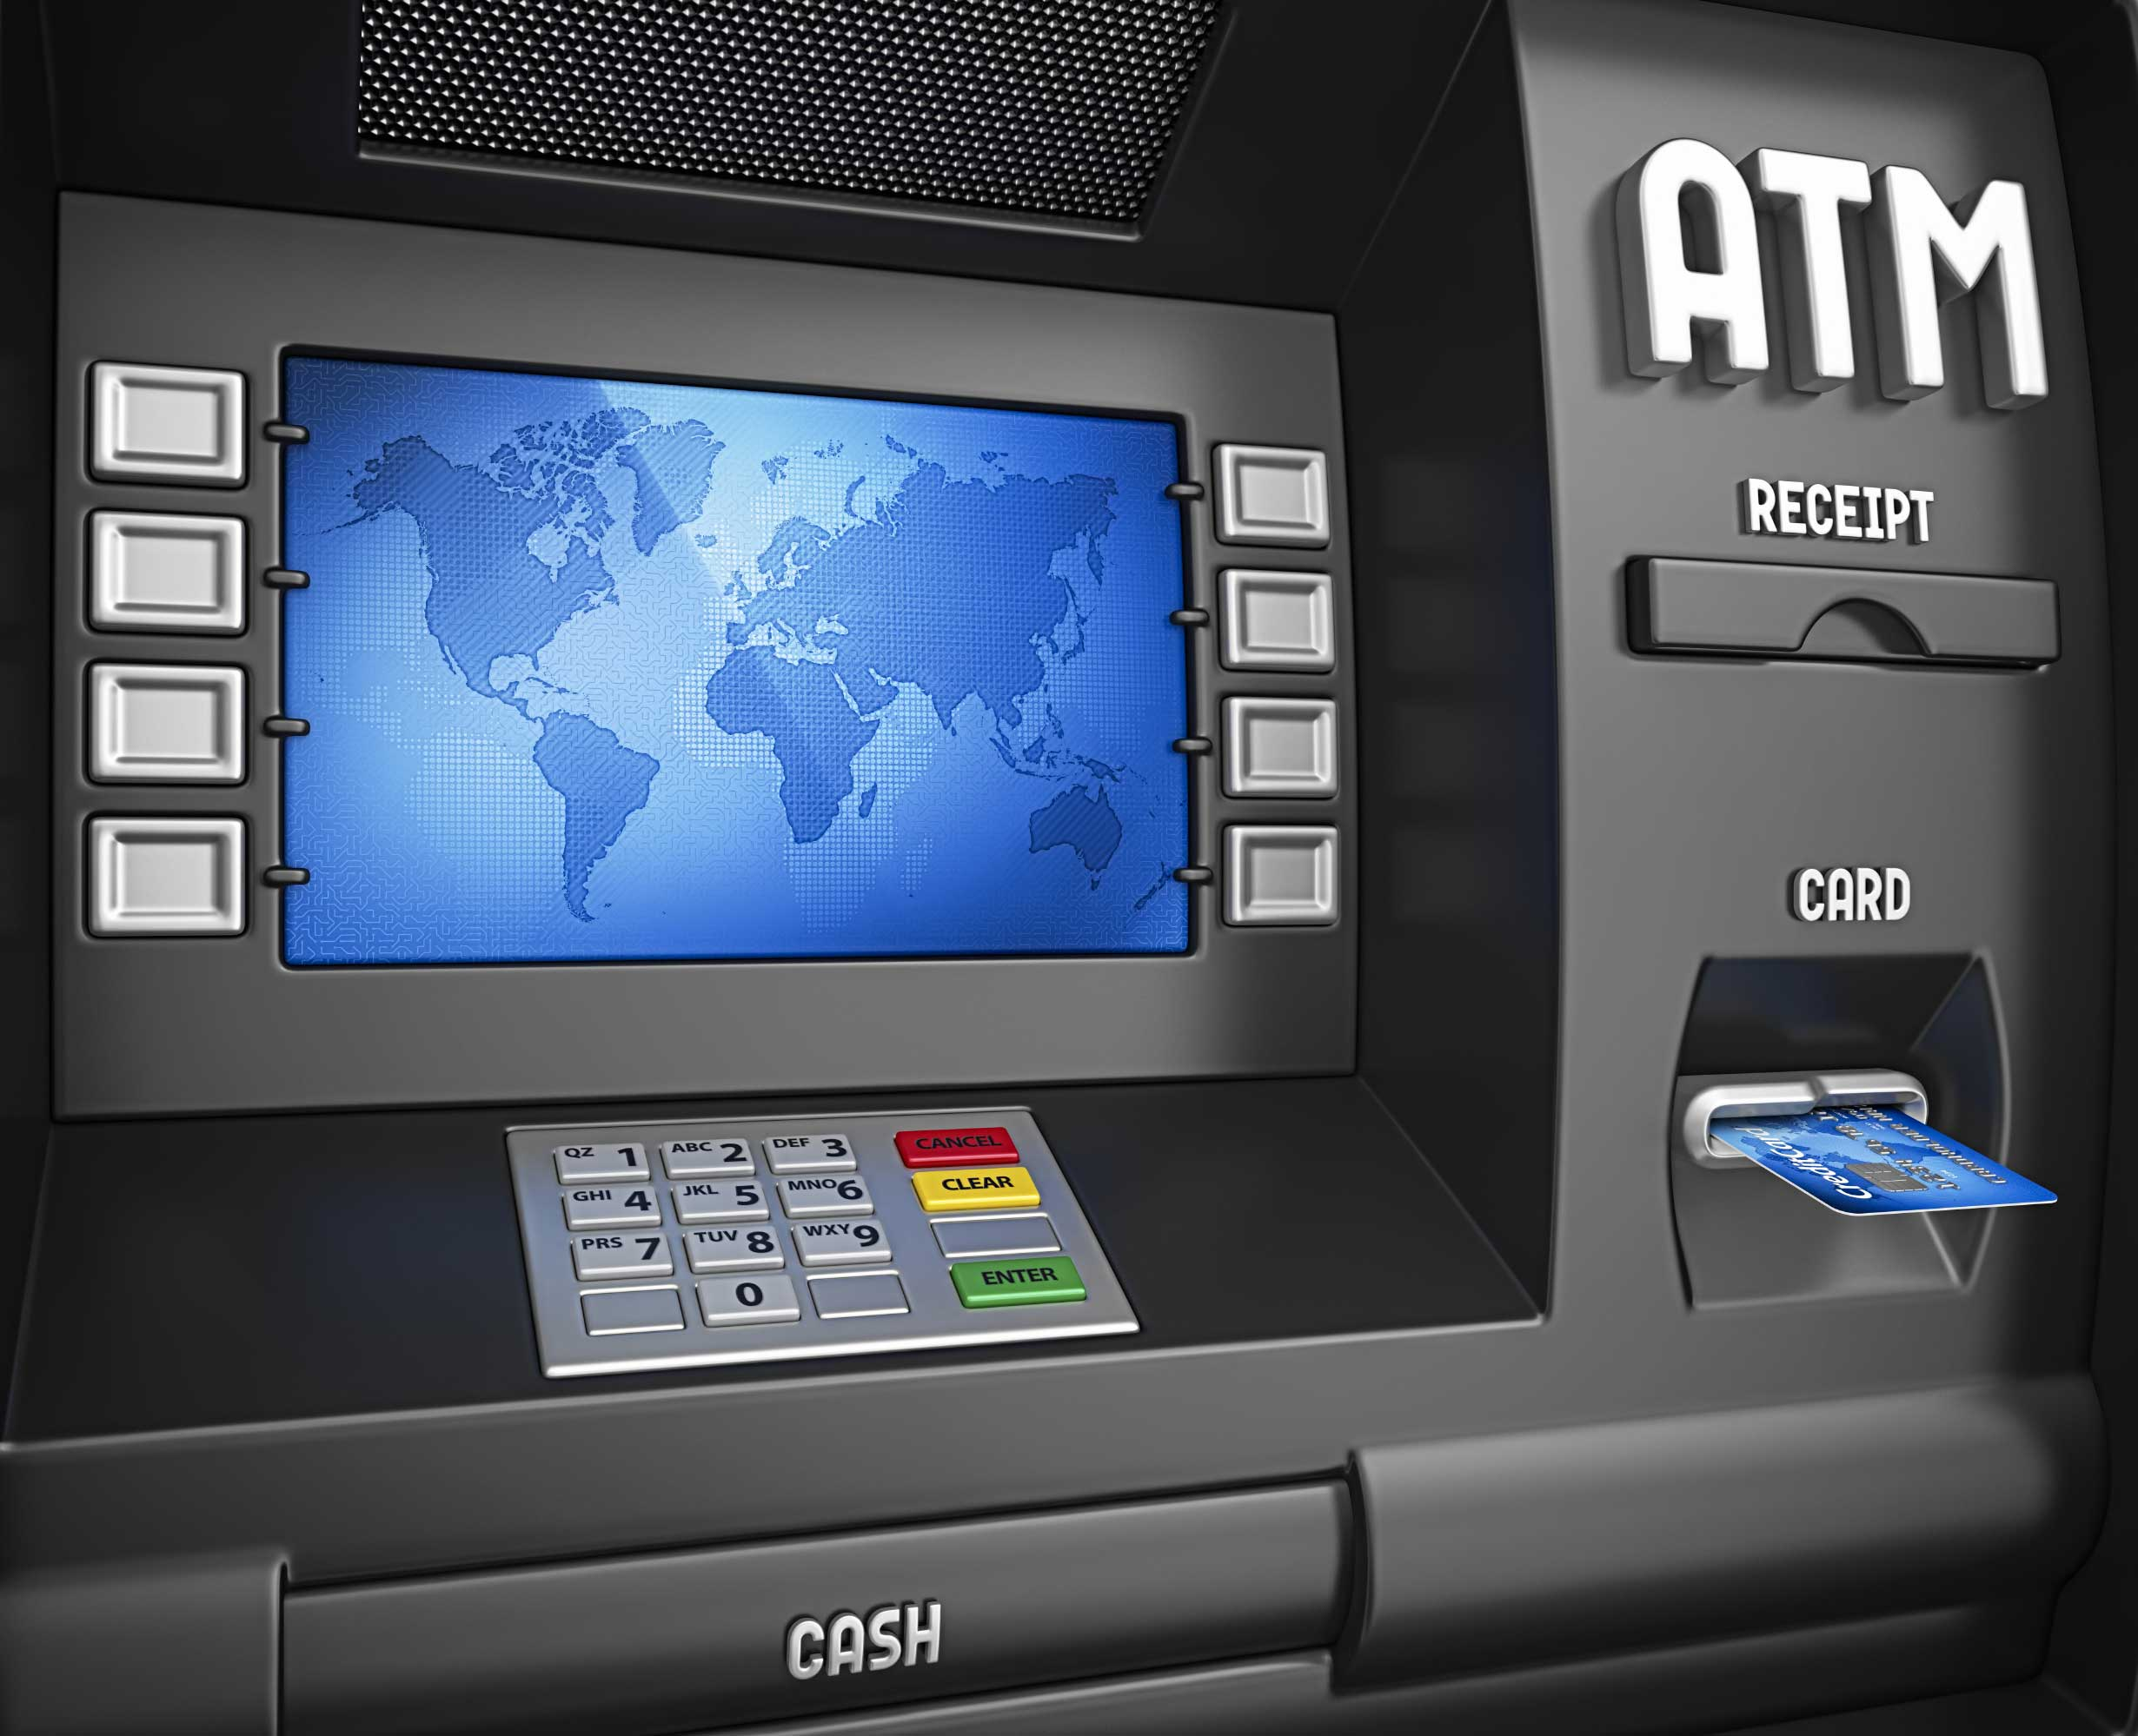 Don T Trust Anyone Trying To Help At Atms Springs Advertiser